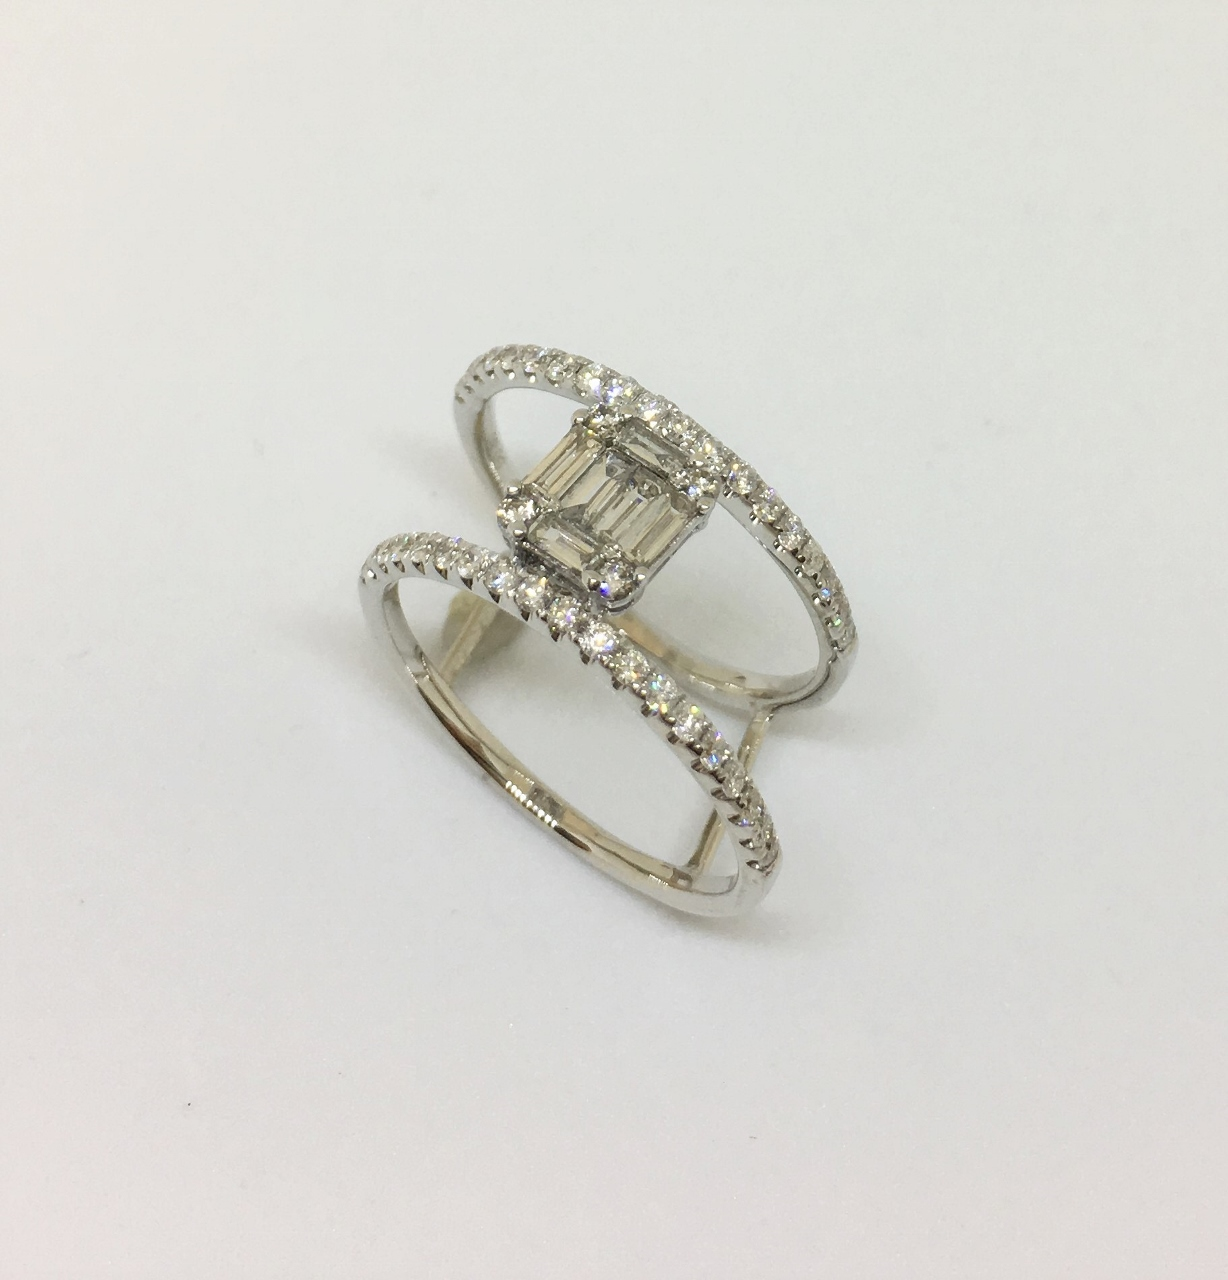 Under 1 Carat Total Weight Diamond Cocktail Ring